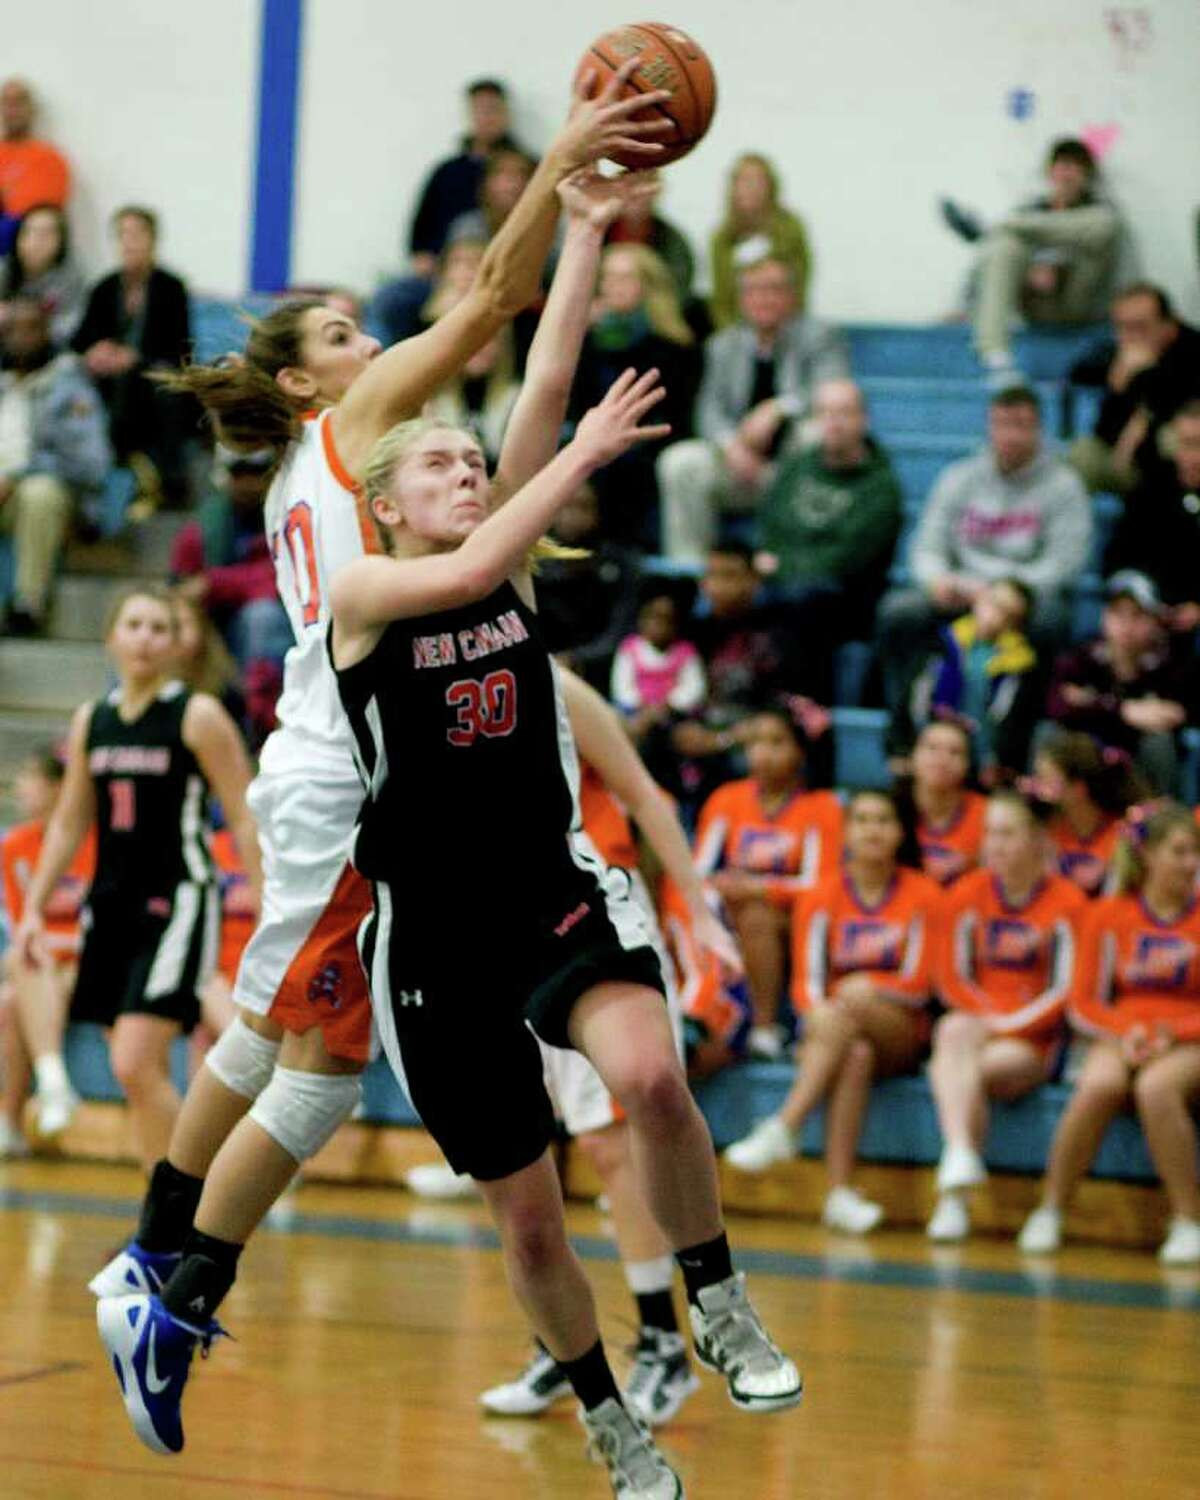 Danbury's Casey Smith blocks a shot by New Canaan's Kelly Armstrong (30) Wednesday night at Danbury High School. The victory enabled the Hatters to finish the regular season undefeated.